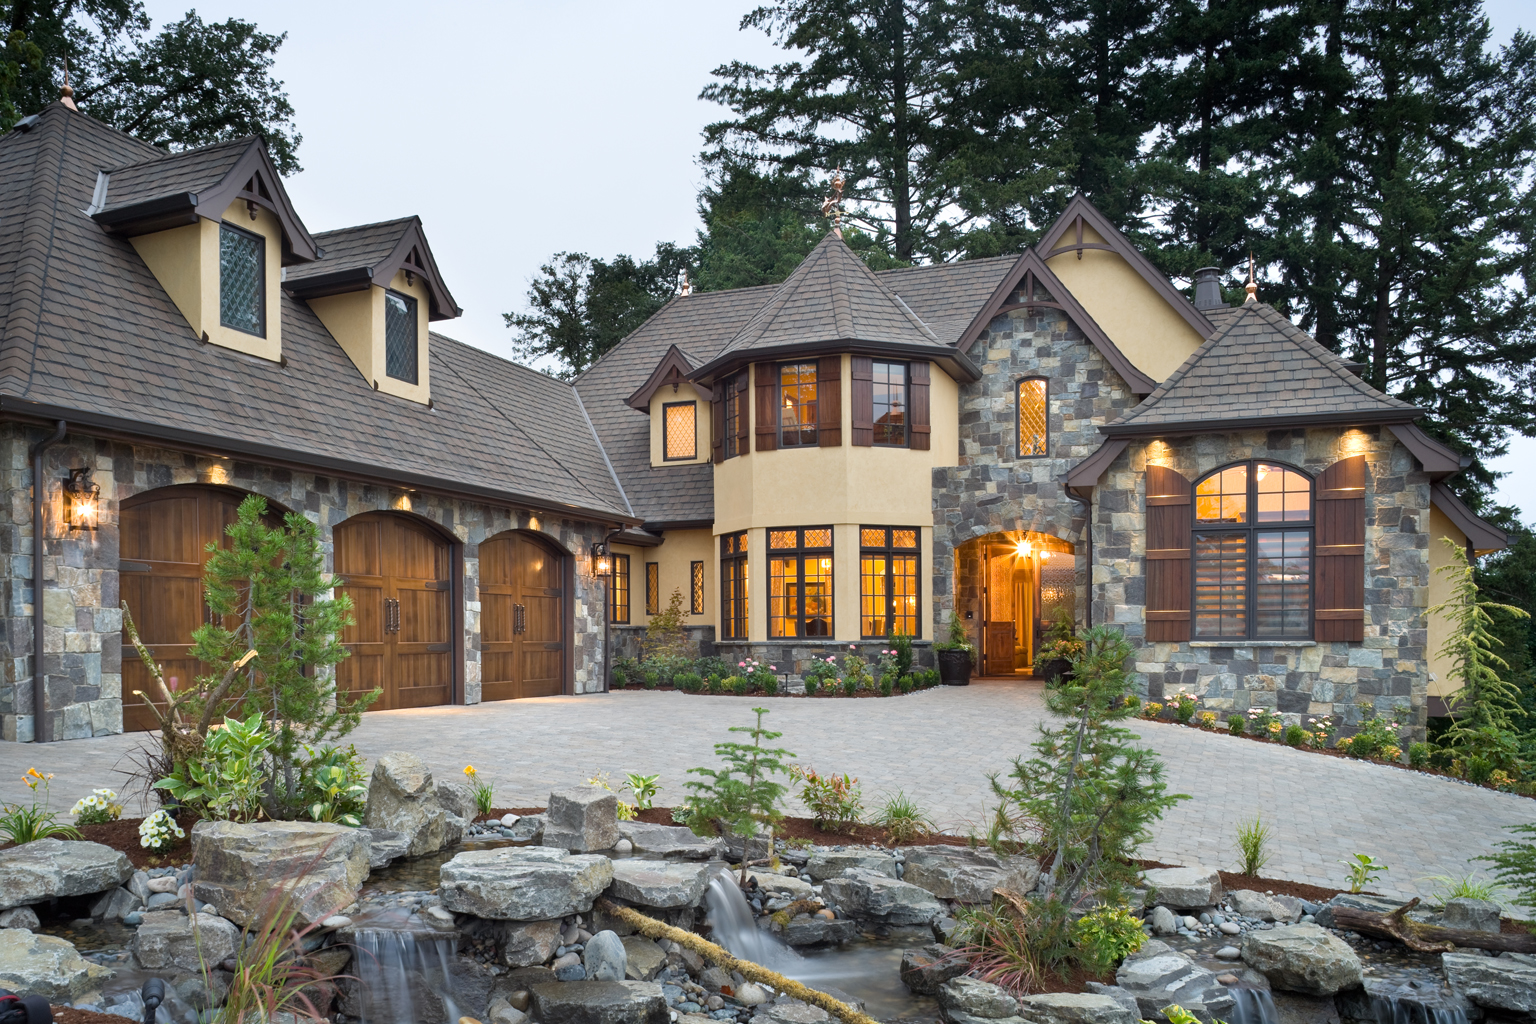 39 rivendell manor 39 by bc custom homes represents mascord 39 s for Luxury home designs usa